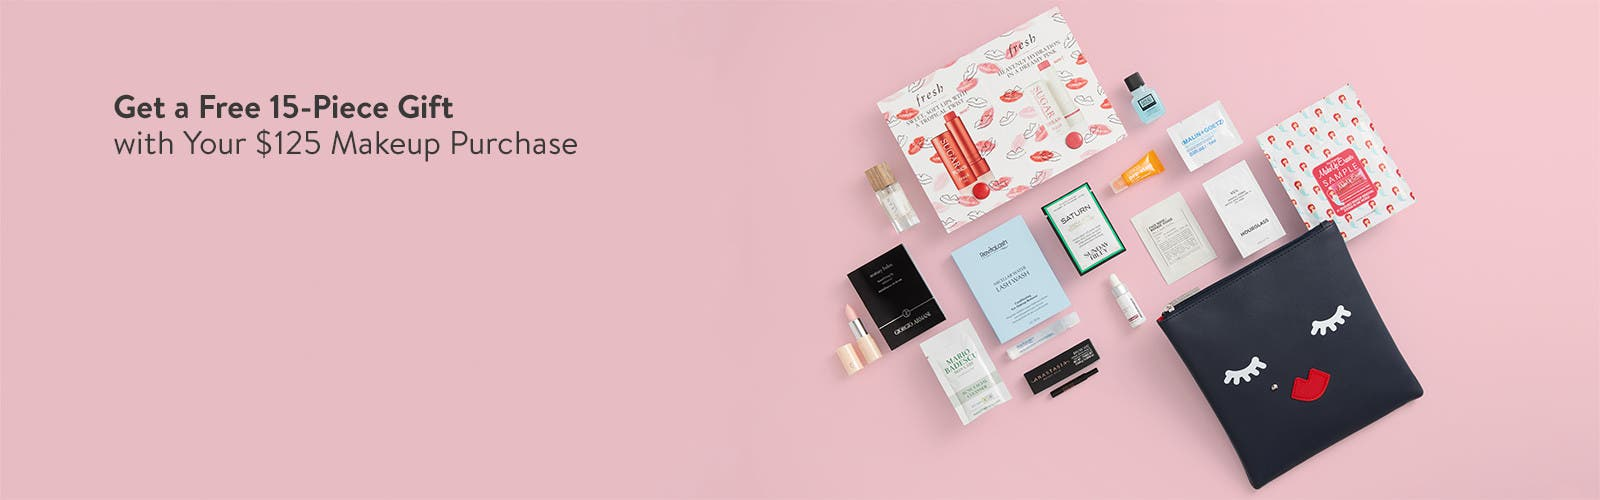 Free 15-piece gift with $125 makeup purchase.